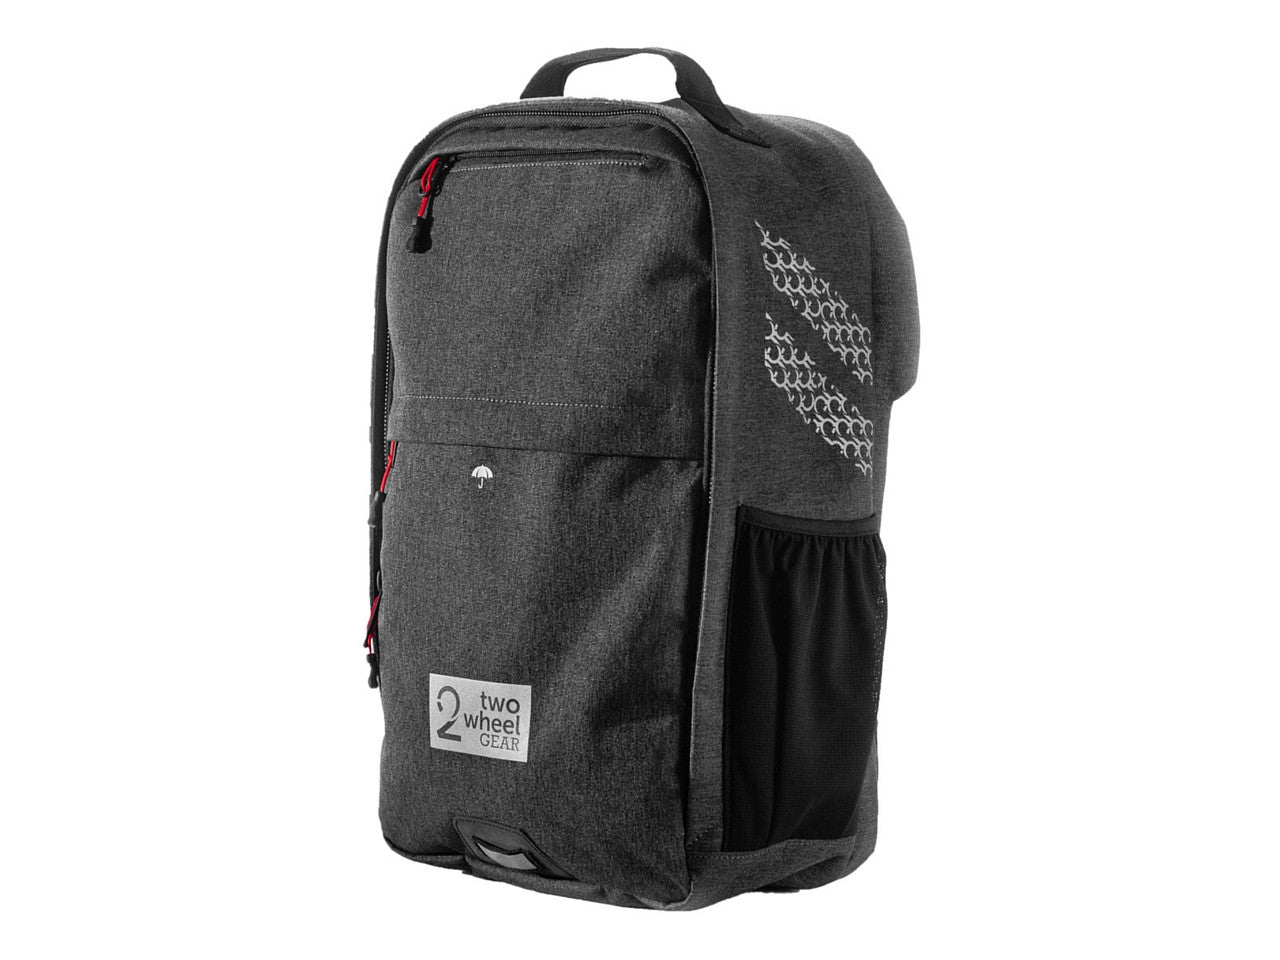 Pannier Backpack Convertible - Graphite , Bags - Two Wheel Gear, Two Wheel Gear - 3